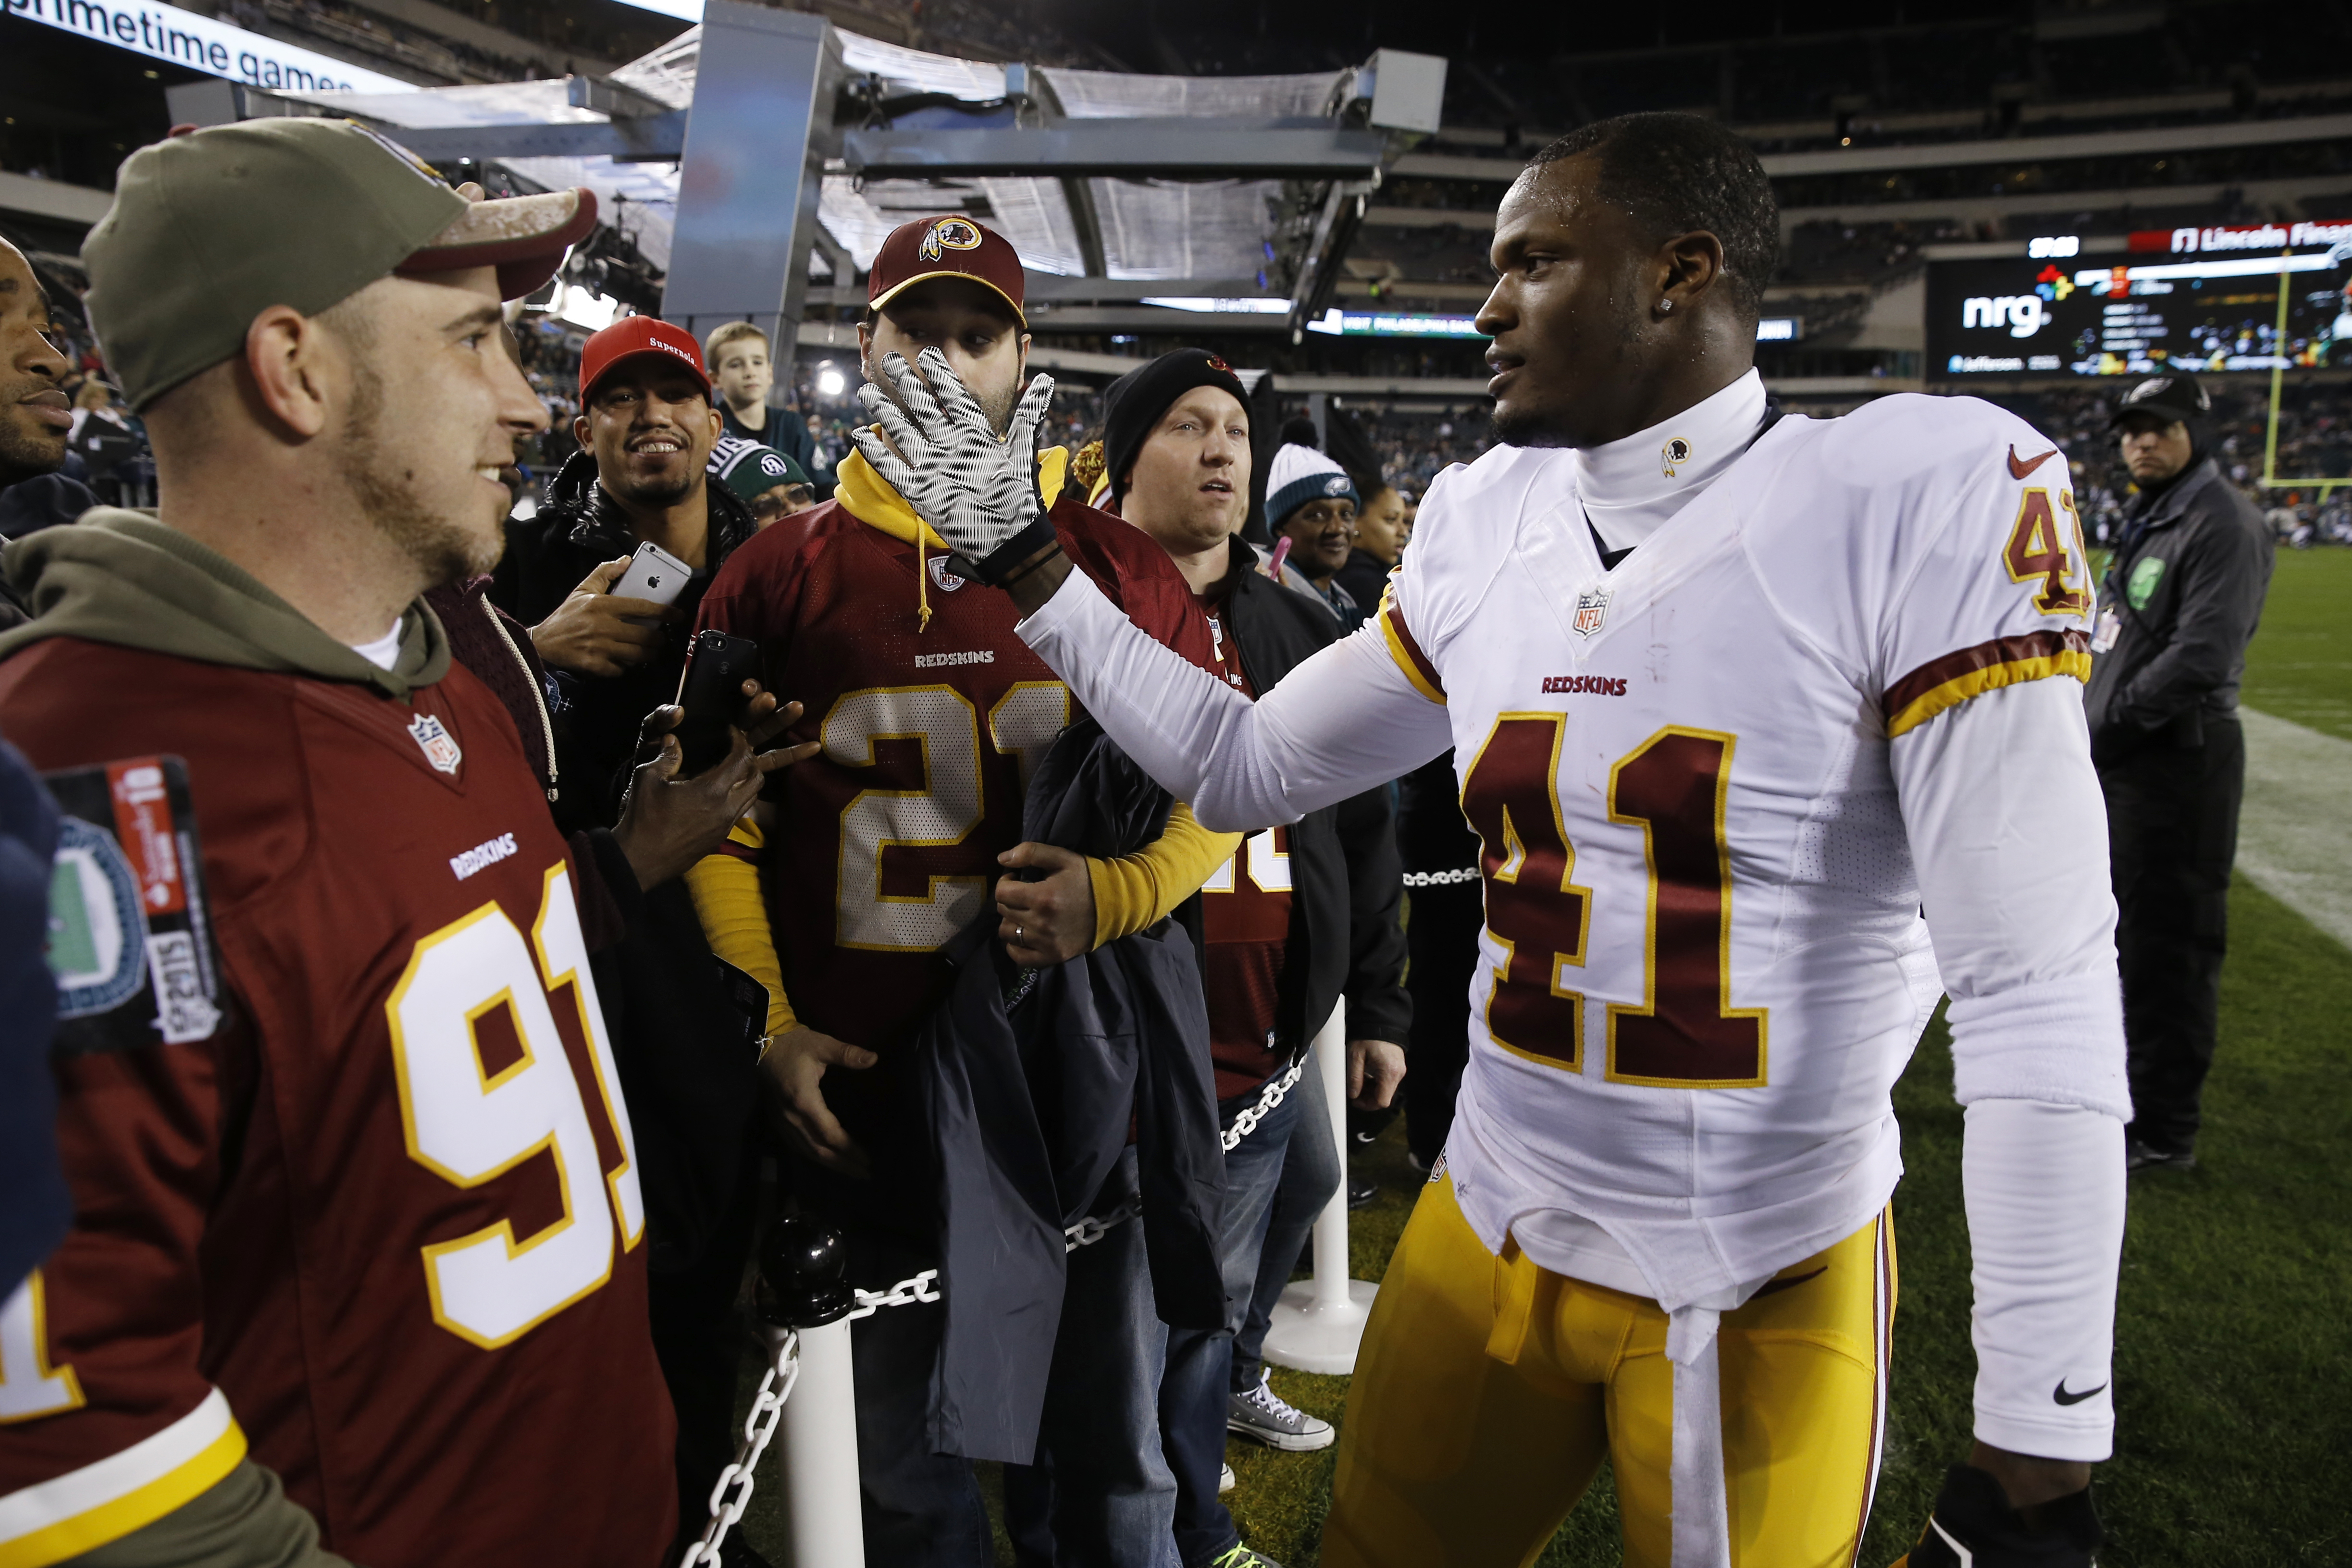 FILE - In this Dec. 26, 2015, file photo, Washington Redskins' Will Blackmon meets fans before an NFL football game against the Philadelphia Eagles, in Philadelphia. Blackmon's agent says the cornerback has re-signed with the Redskins on a two-year deal.